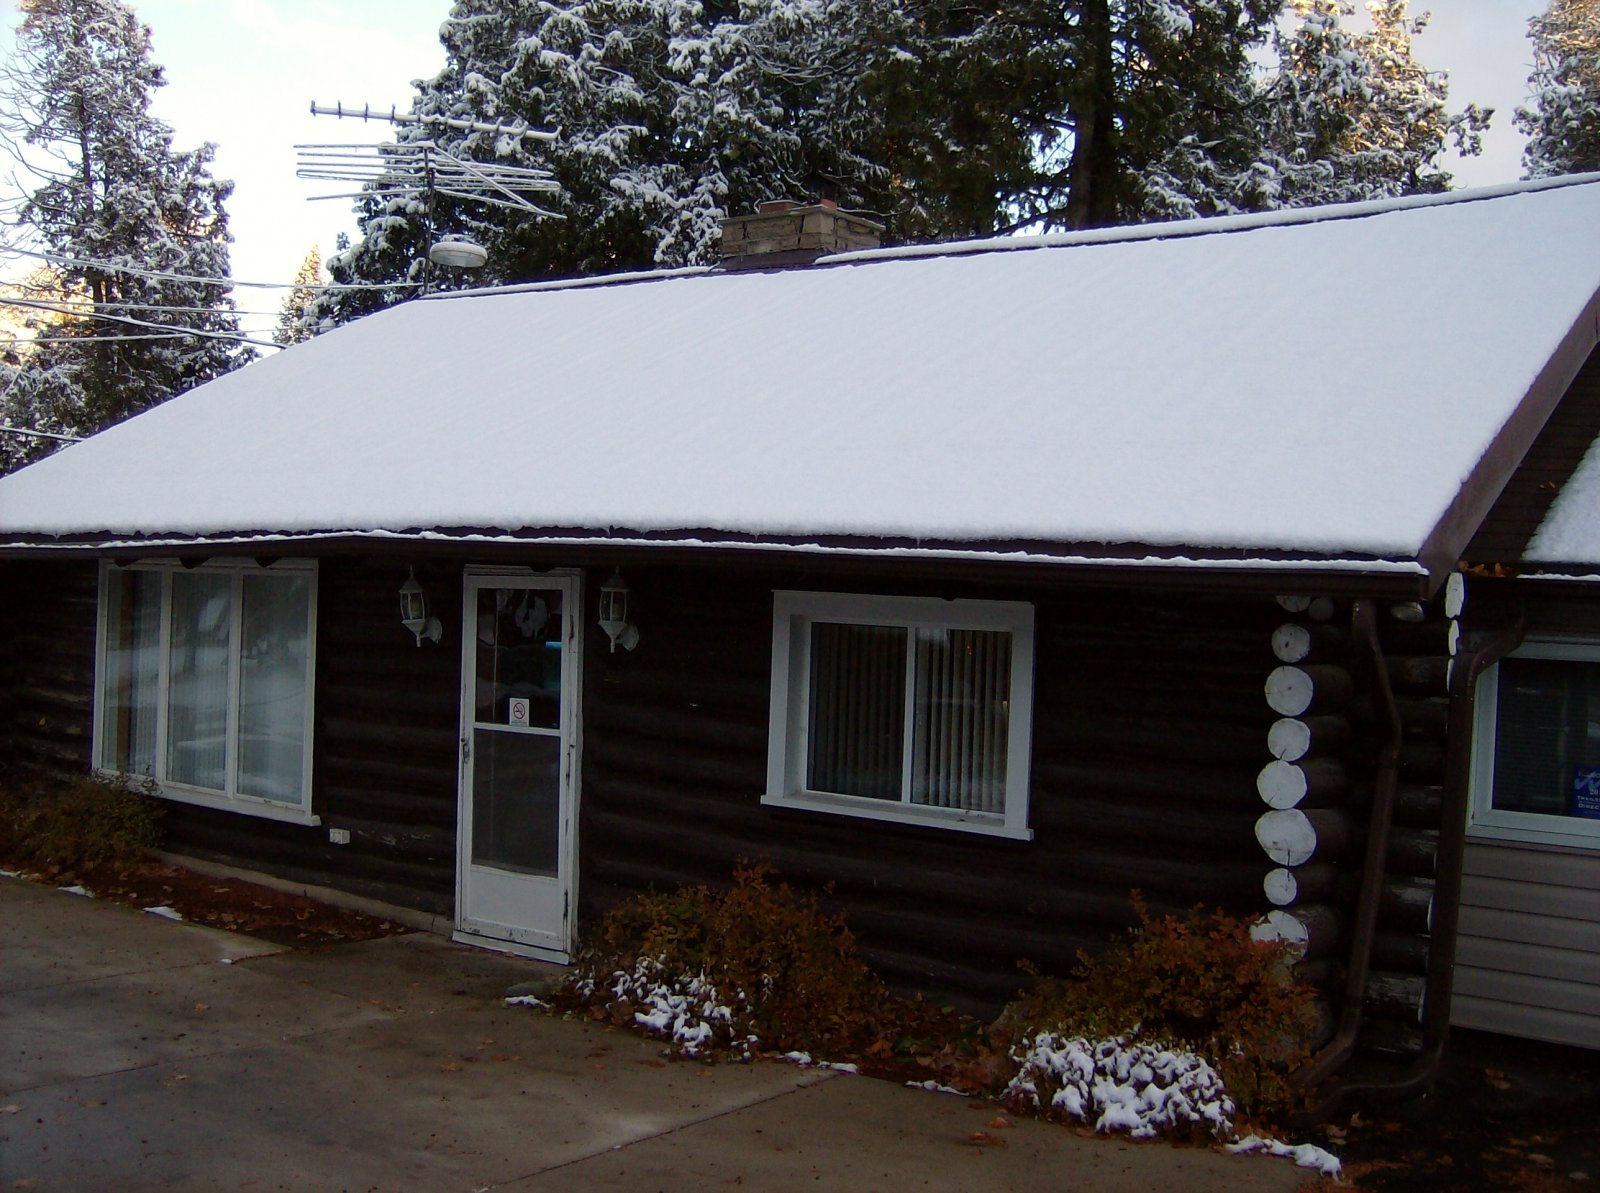 Click image for larger version  Name:October 22 2010 First Snow 003.jpg Views:73 Size:333.4 KB ID:113755